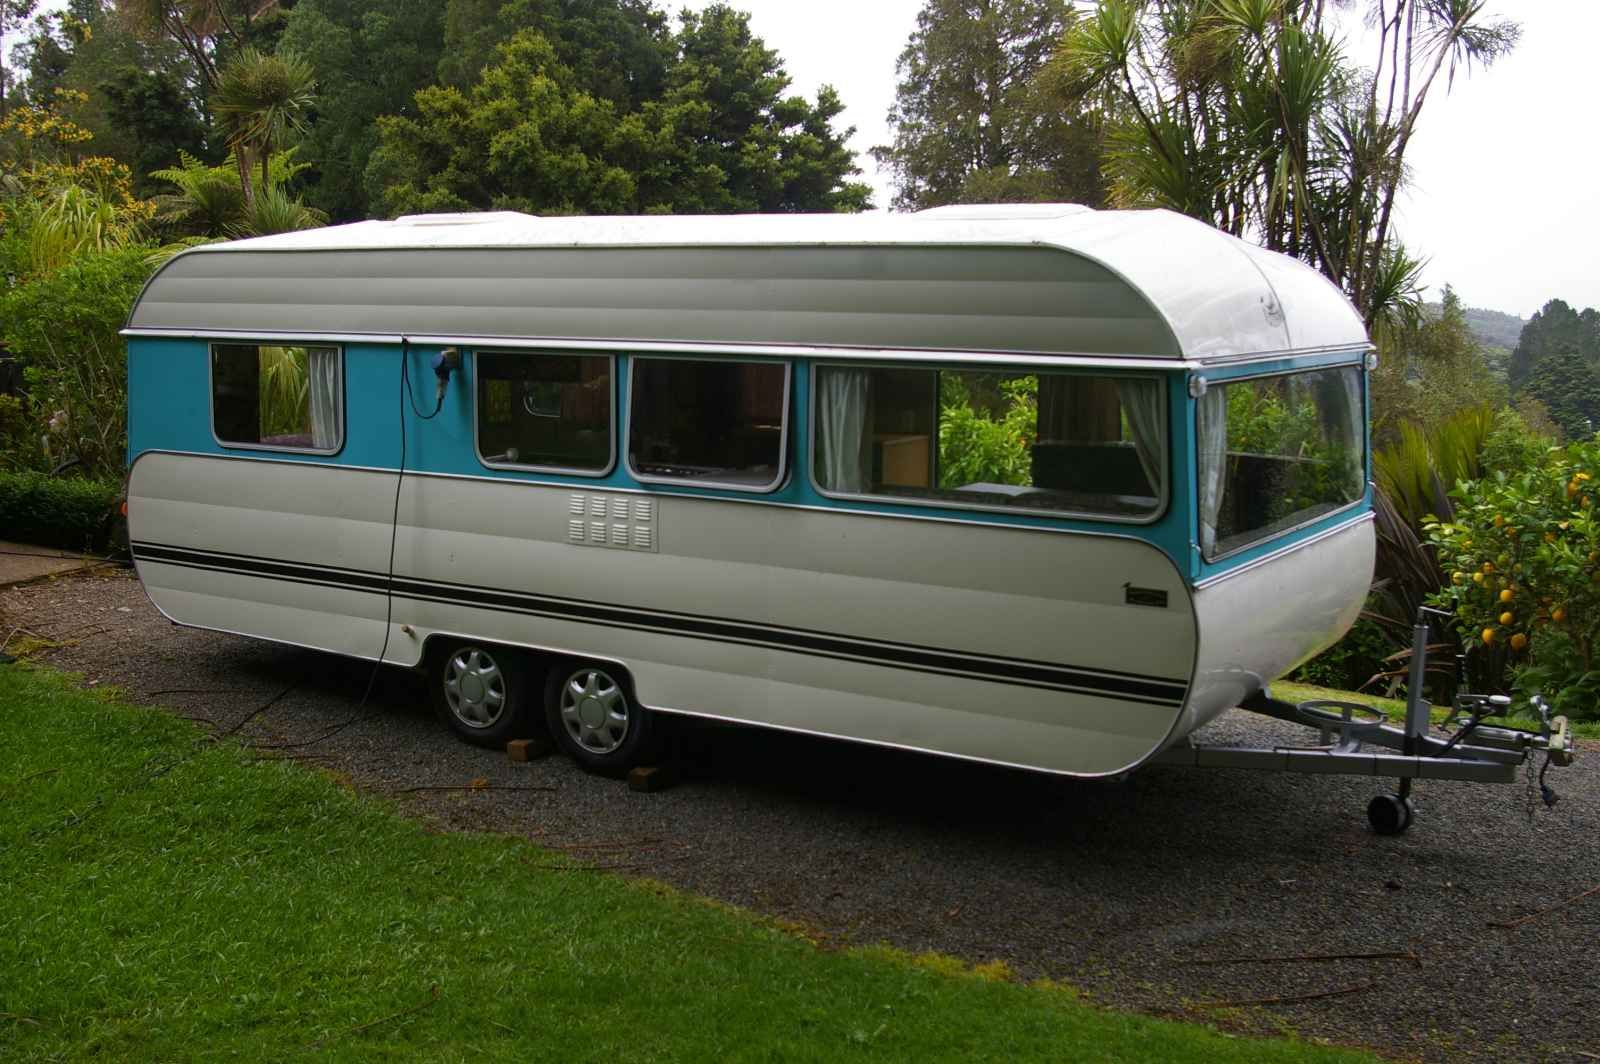 Original I Hitchhiked And Rented Caravans The Kiwis Are Very Welcoming But Dont  Affandy, Who Is Also PresidentCEO Of Francorp Malaysia, Was Speaking At The